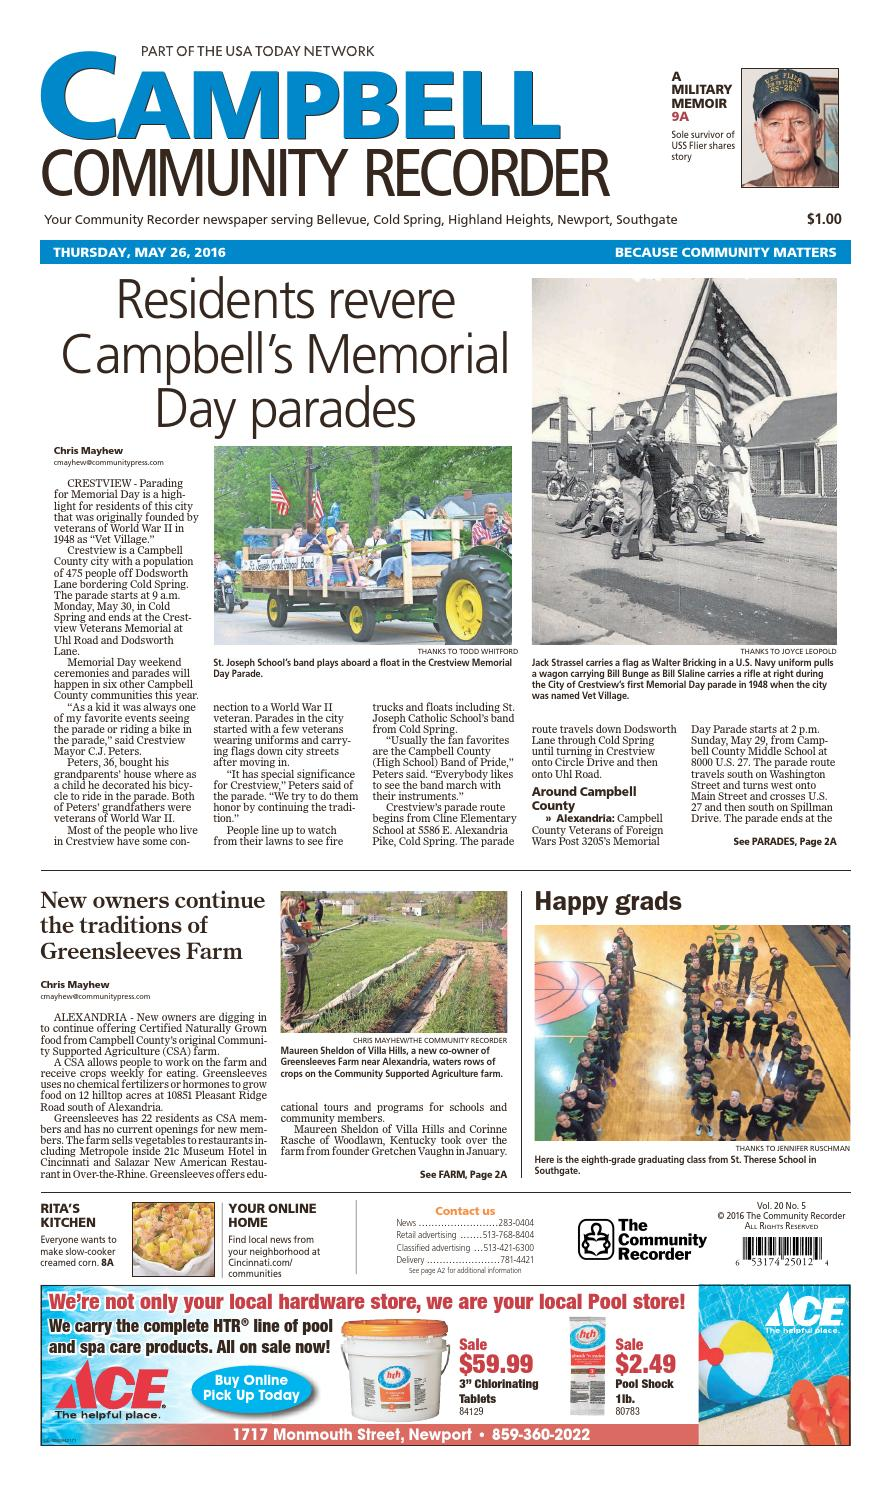 bcc7b91425 Campbell community recorder 052616 by Enquirer Media - issuu